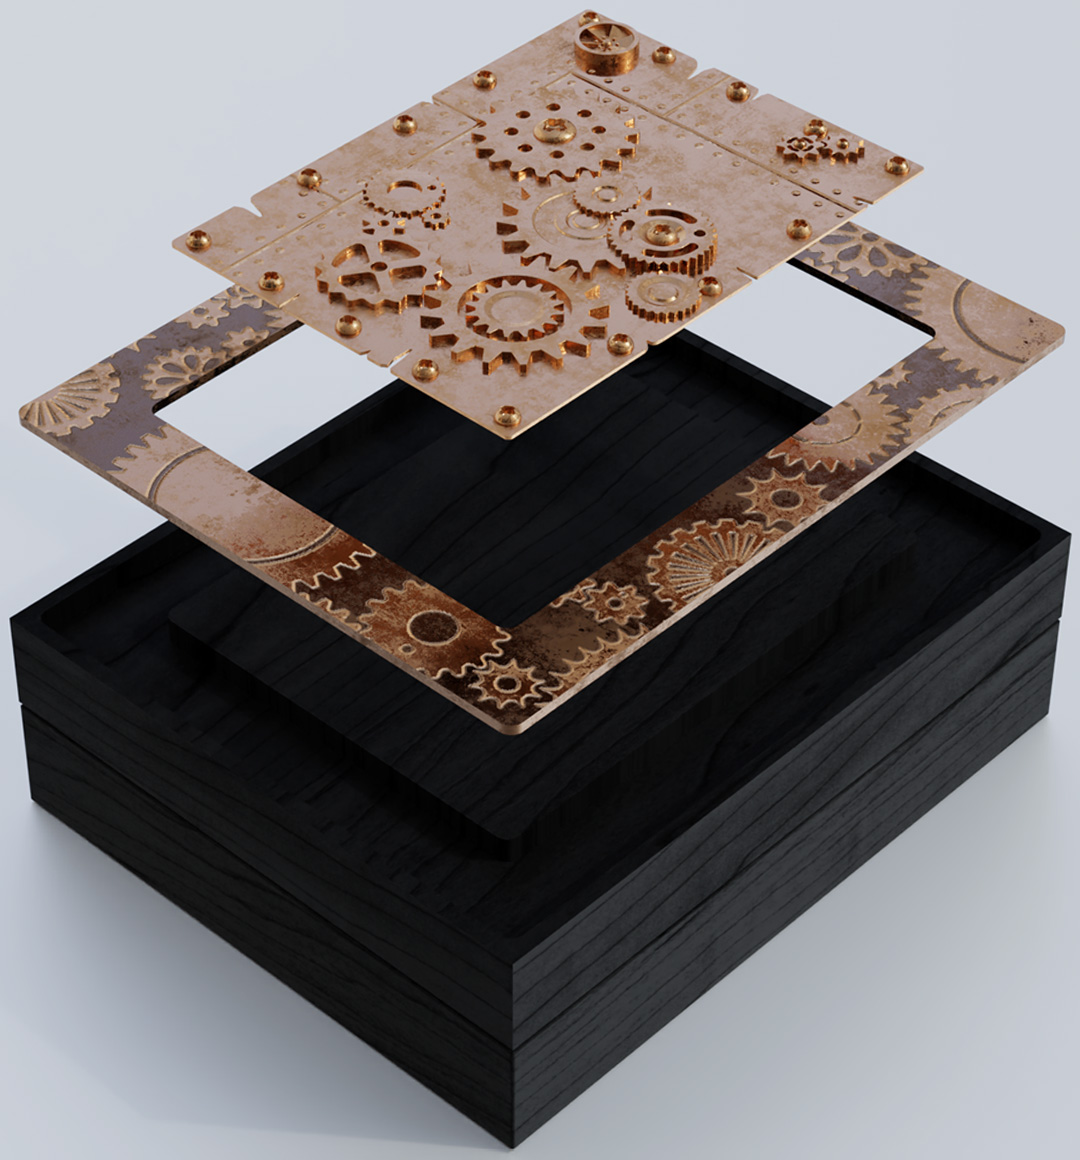 Steampunk box created by IPL Packaging